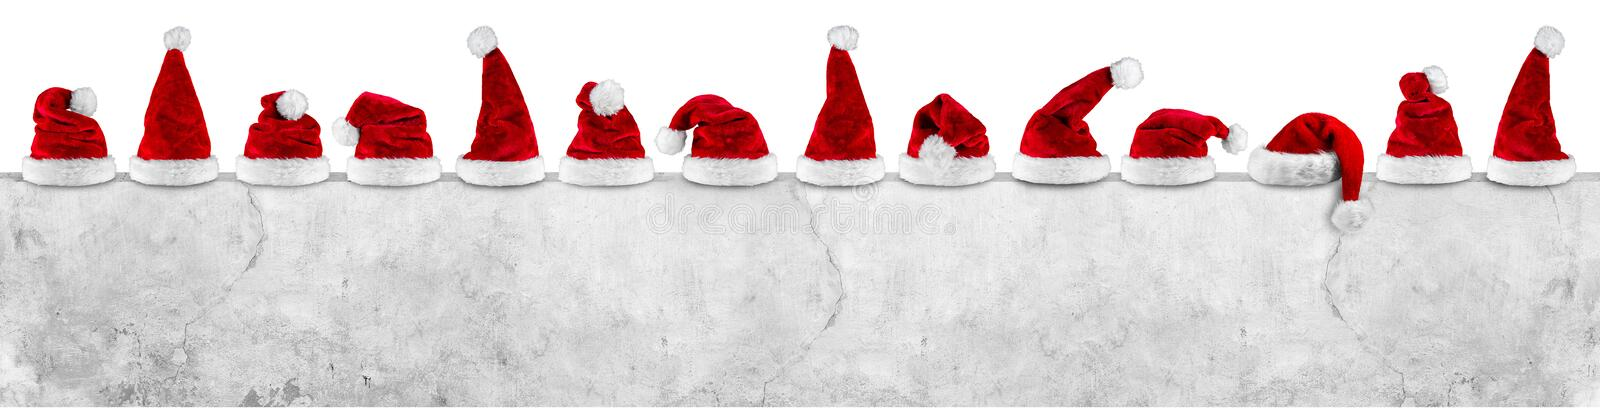 row of red white santa claus christmas xmas hat on empty concrete wall royalty free stock image